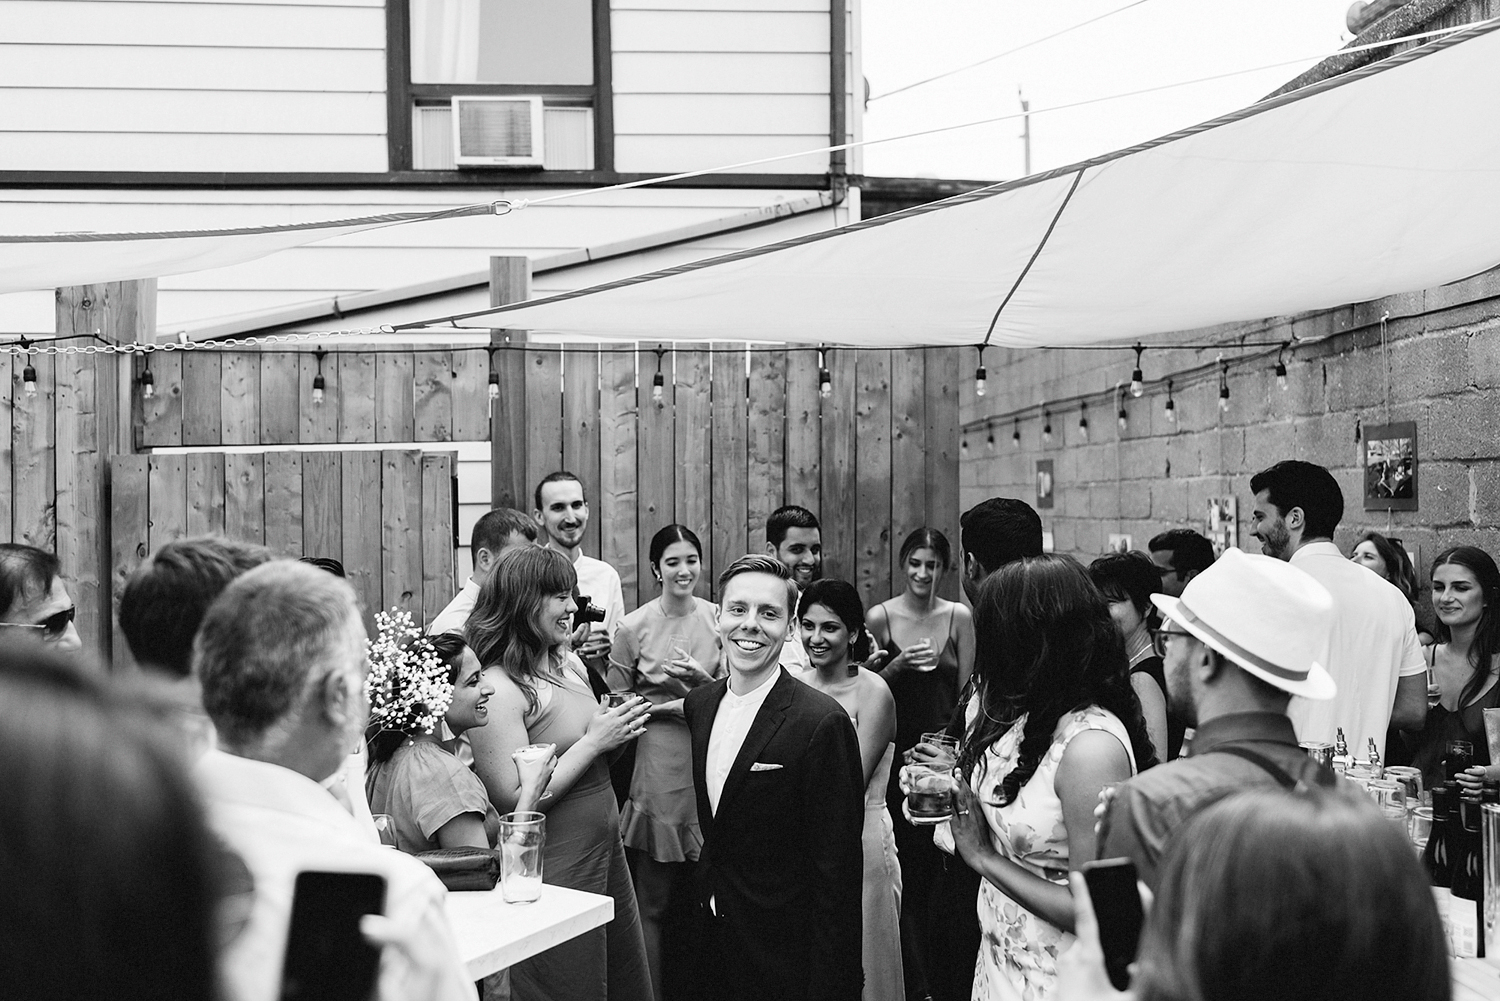 film-analog-photography-toronto-film-wedding-photographers-alternative-reception-bar-pray-tell-cocktail-hour-reception-casual-bride-and-groom-entrance.jpg